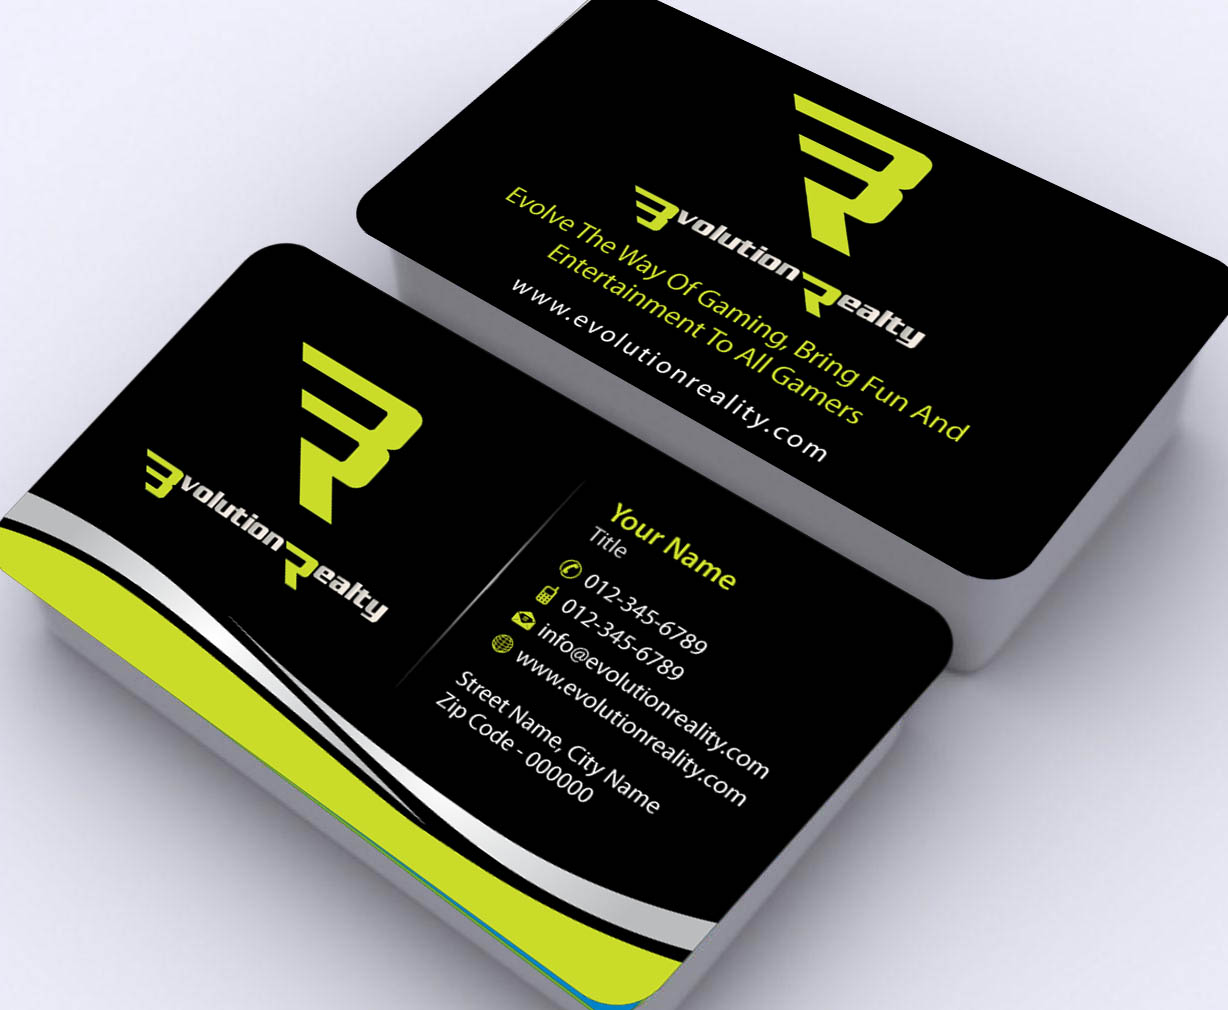 Entertainment Business Card Design For A Company By Sbss Design